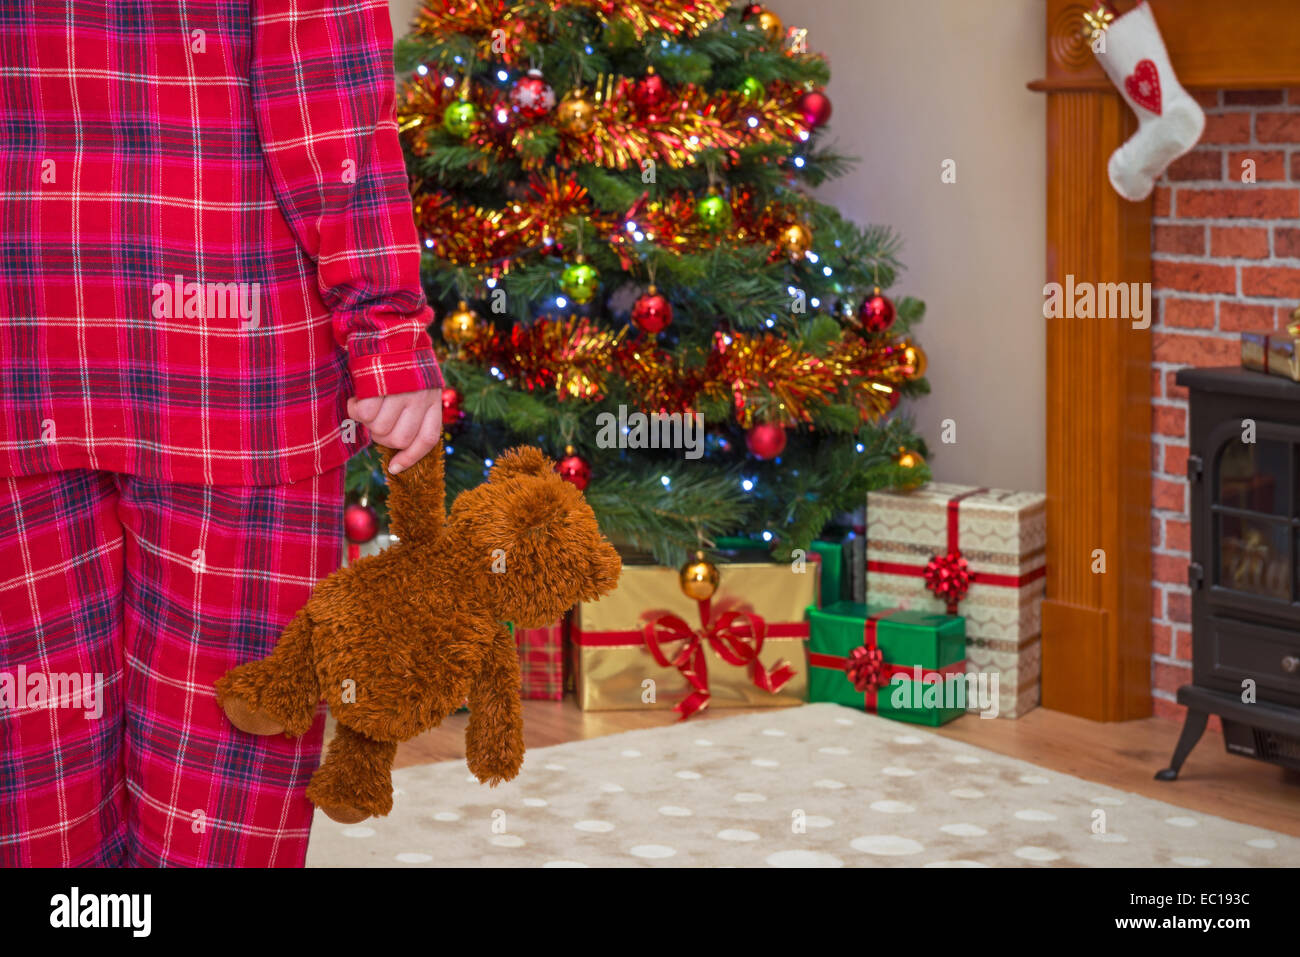 A little girl holding her teddy bear on Christmas morning, gift wrapped presents under the tree and a stocking over - Stock Image